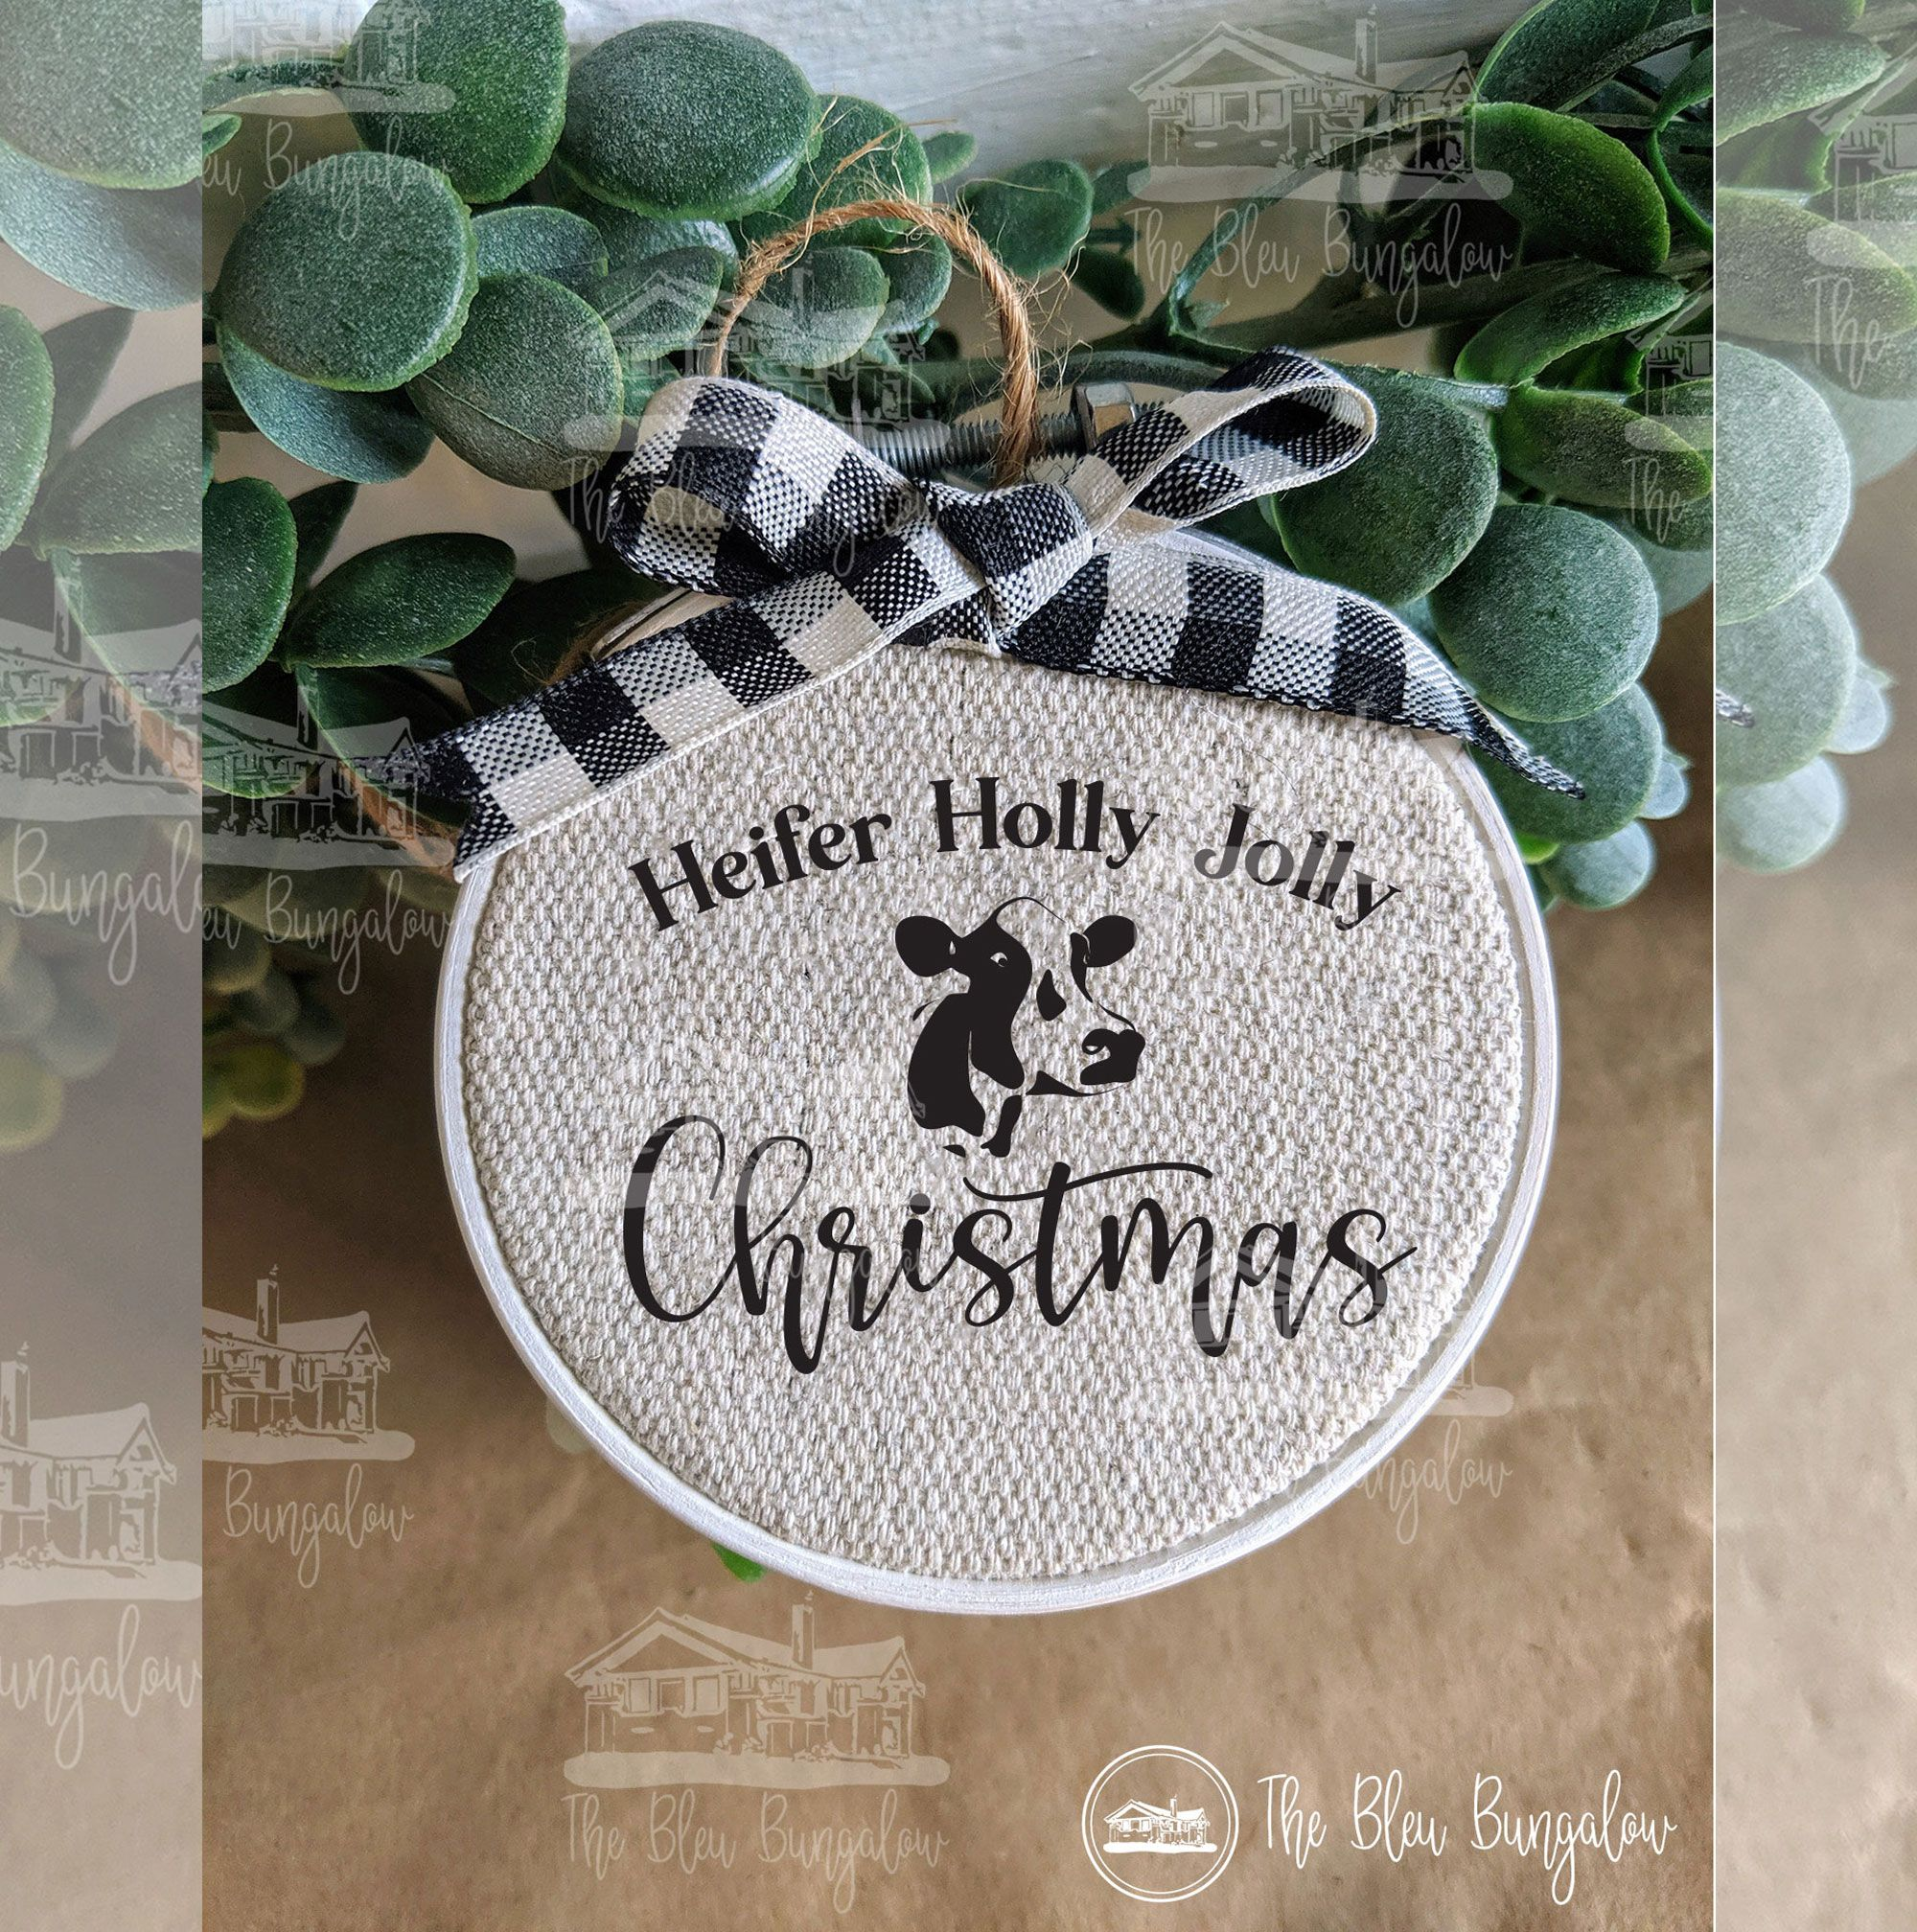 Heifer Holly Jolly Christmas! Super cute cowthemed SVG to